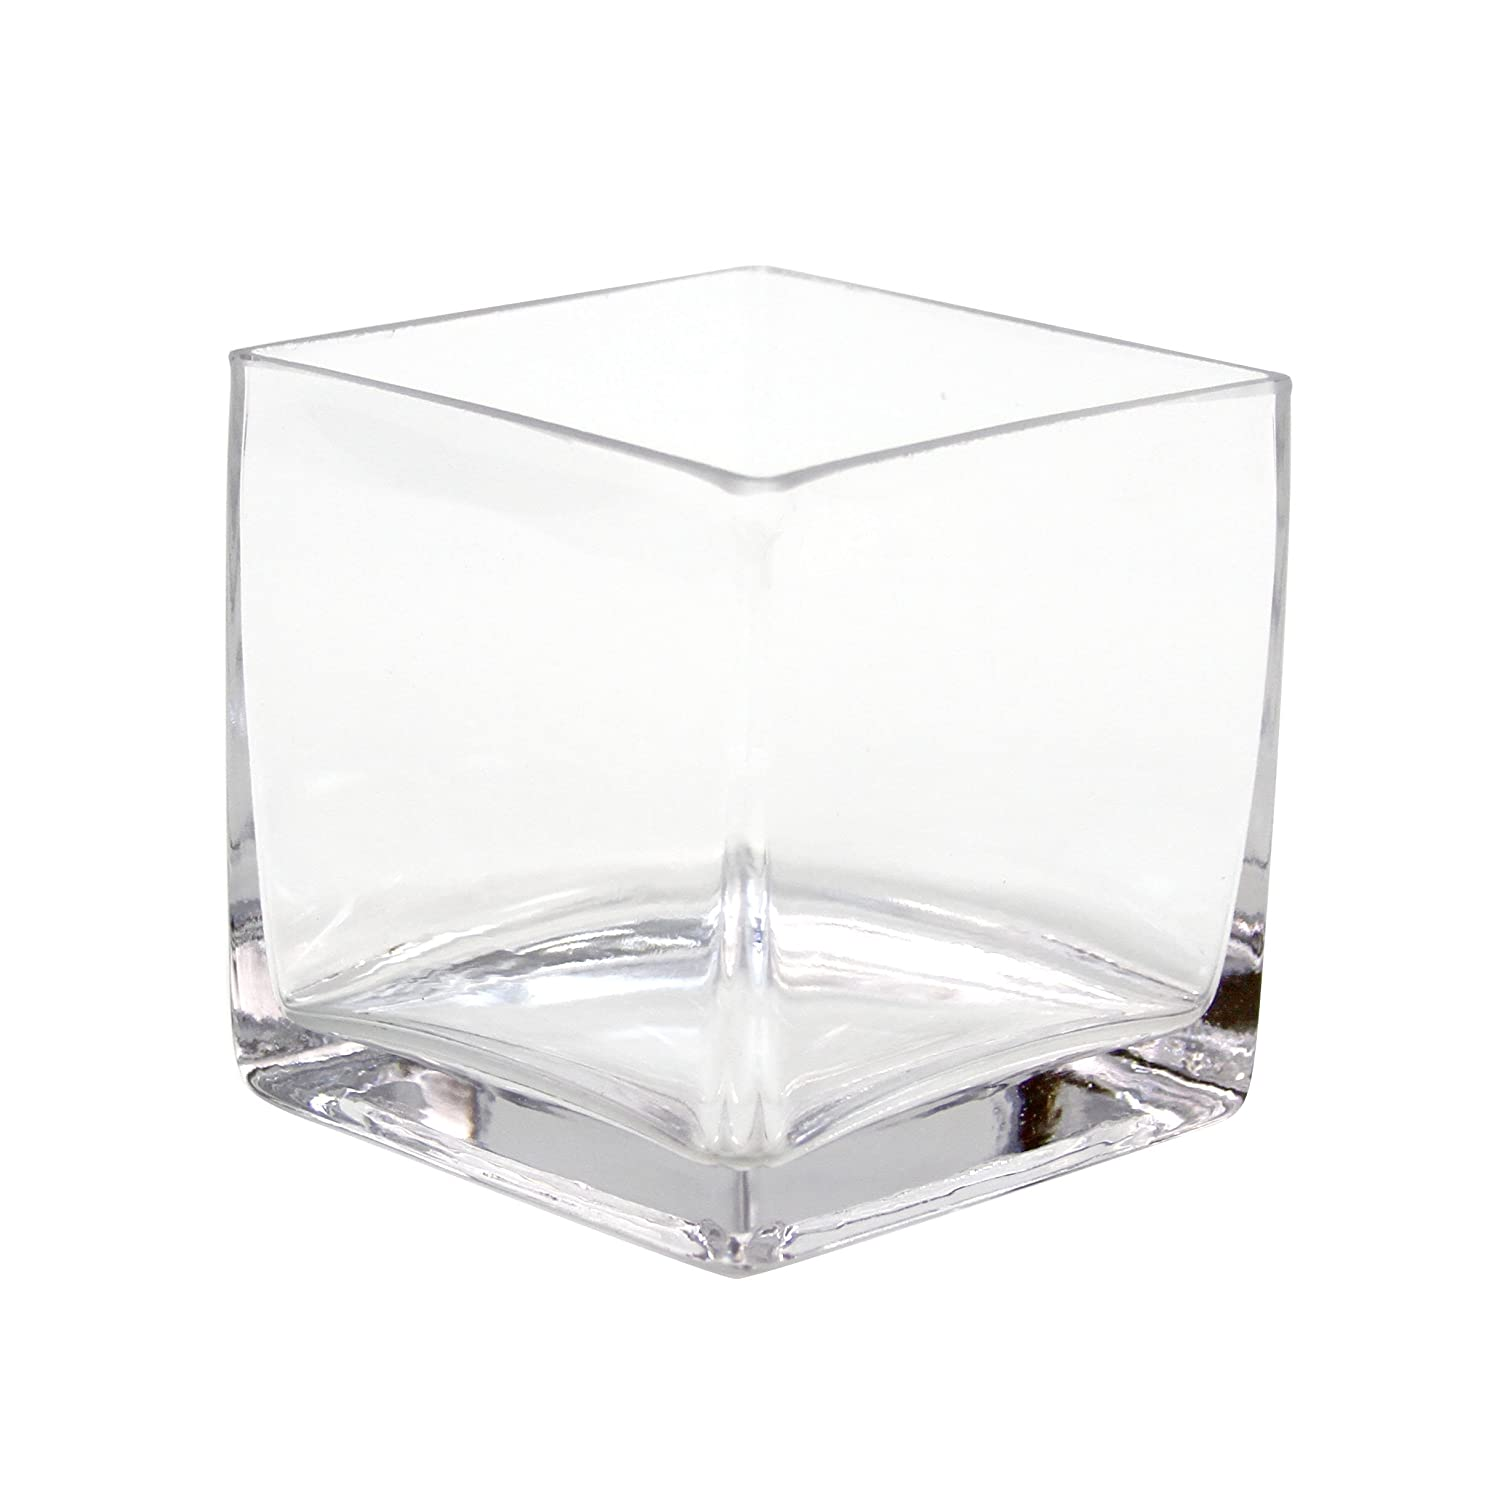 Koyal Wholesale 404343 12-Pack Cube Square Glass Vases, 4 by 4 by 4-Inch wholesale